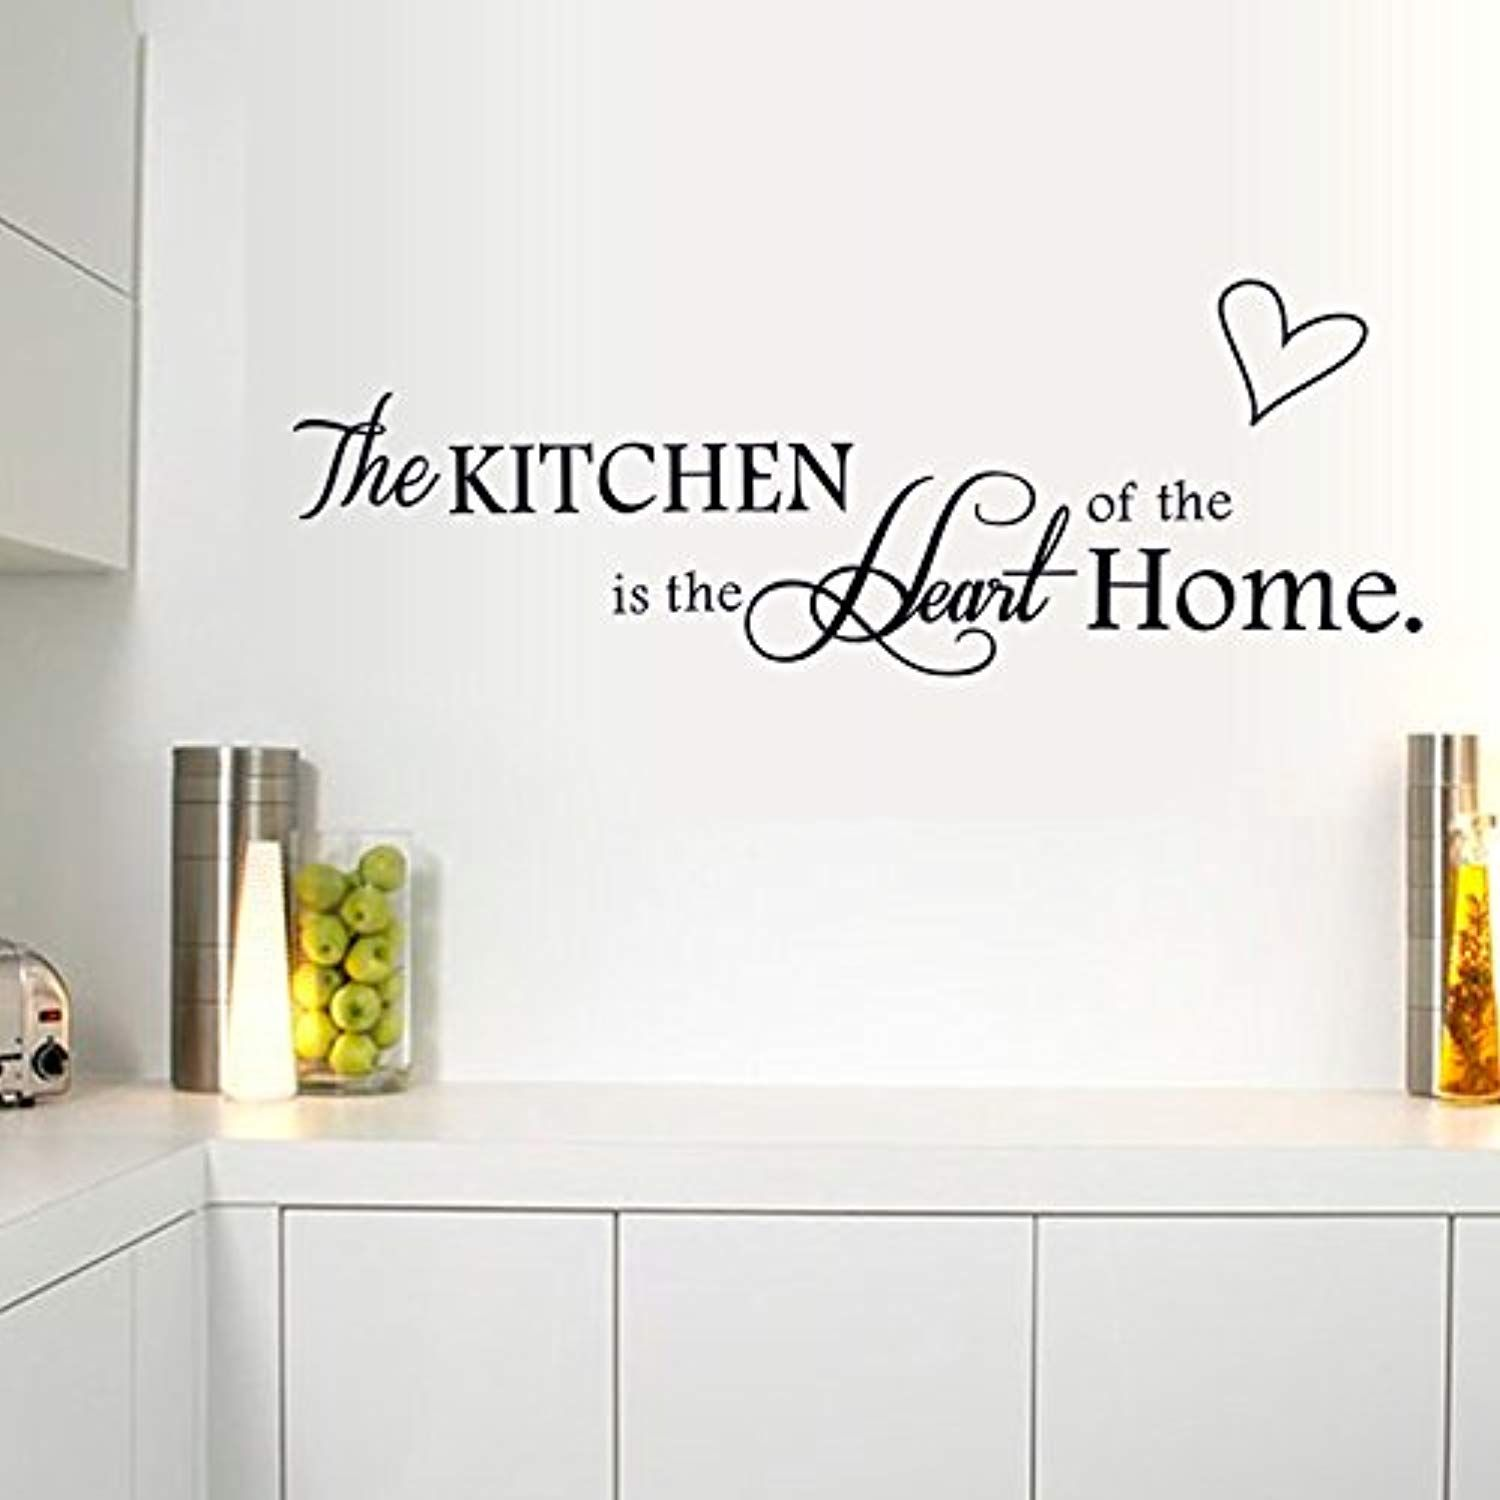 Fanglee The Kitchen Is The Heart Of The Home Quotes And Sayings Wall Decal Art Decor Wall Stickers Kitchen Wall Decals Home Decor Uk Wall Stickers Living Room